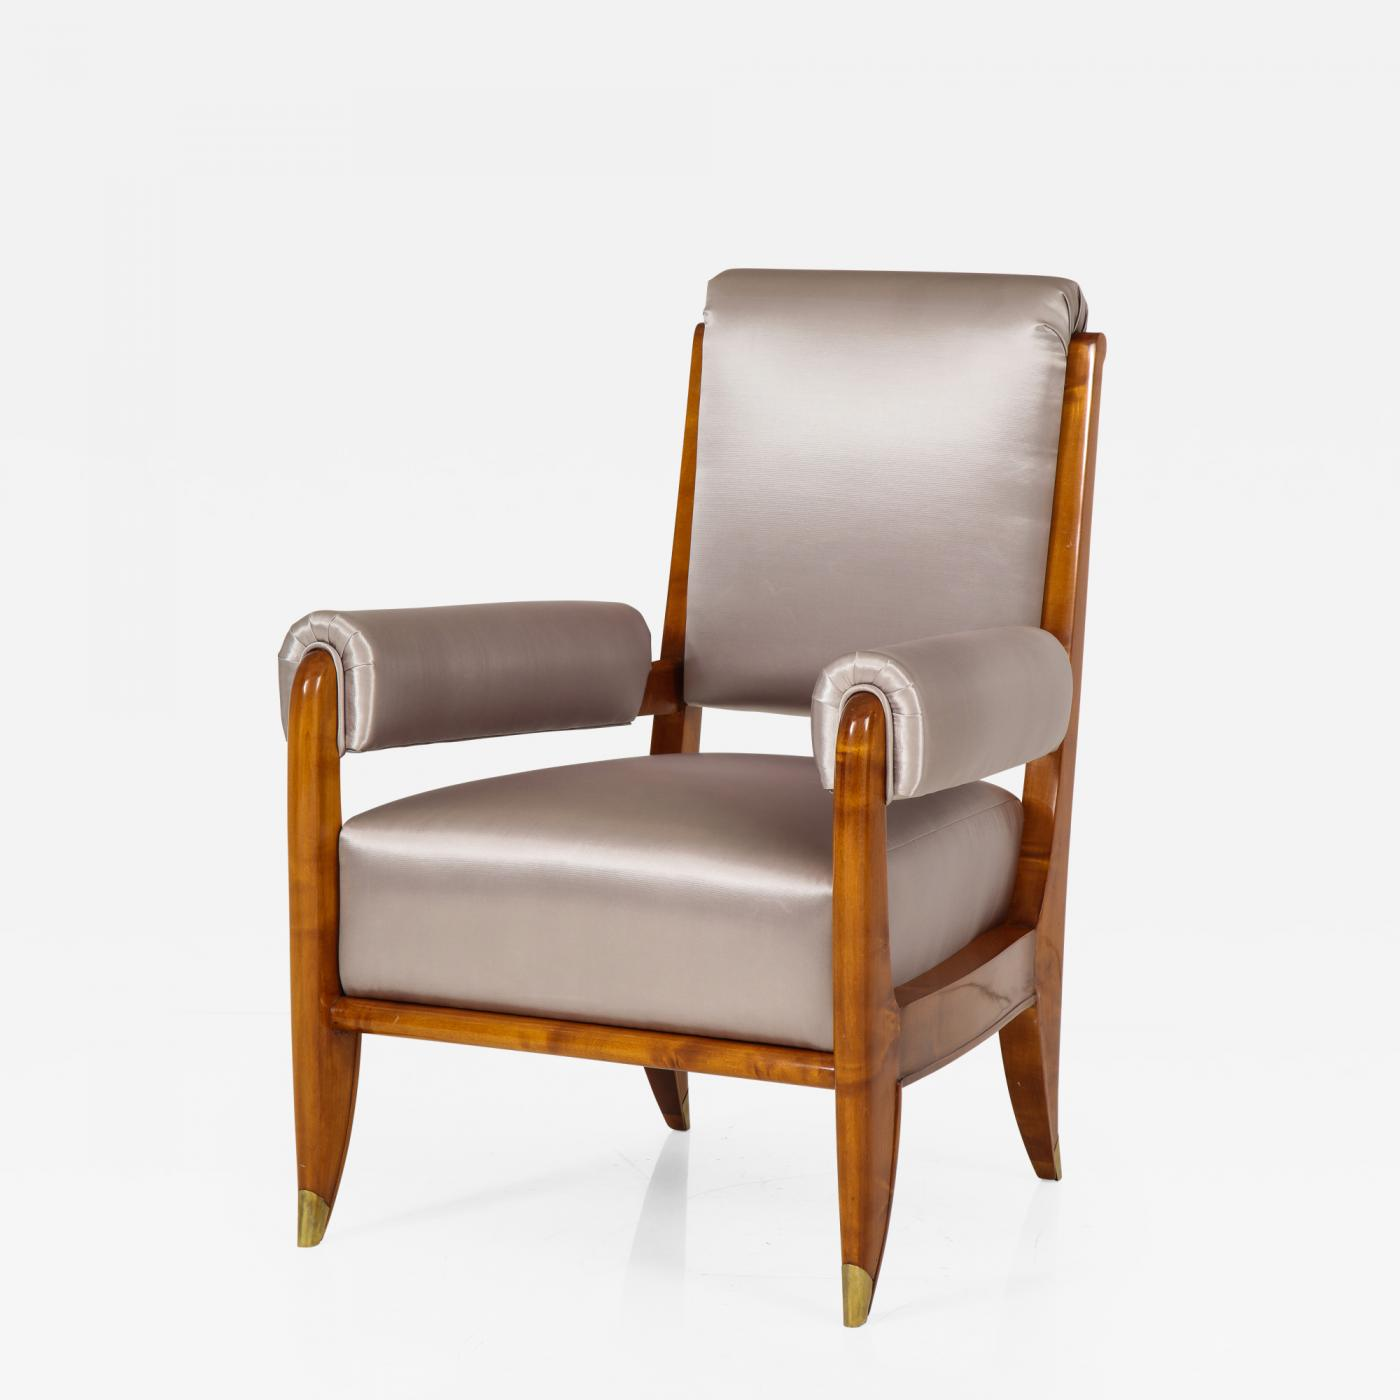 A Modernist armchair designed by Maurice Jallot